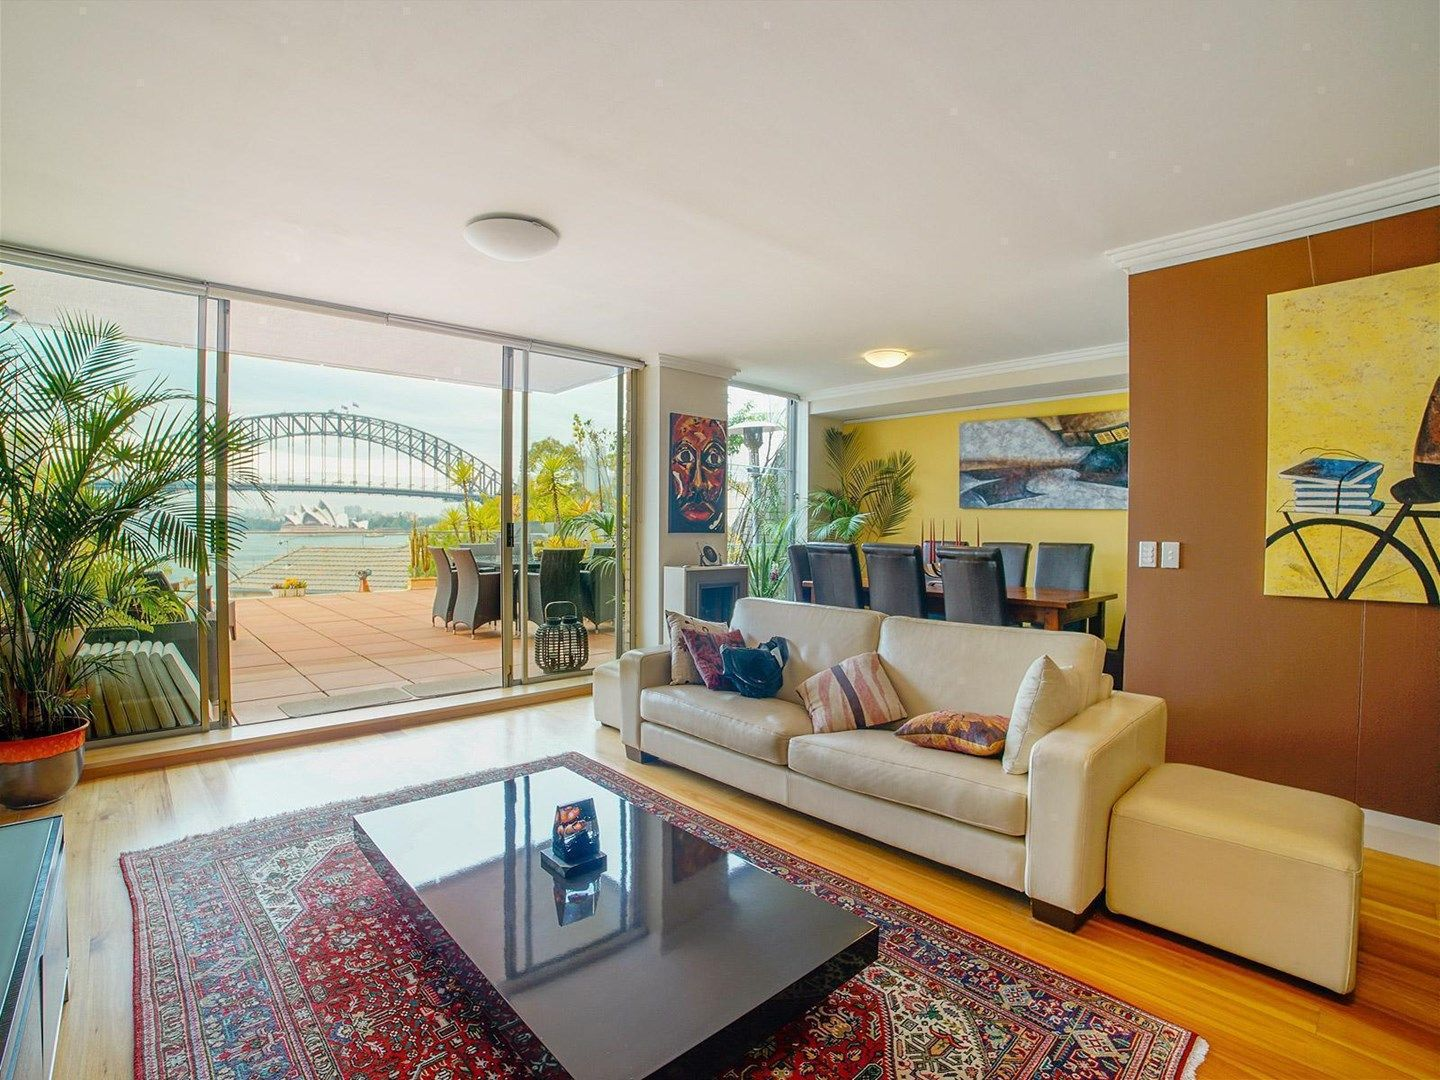 17/1 Bay View Street, Mcmahons Point NSW 2060, Image 0